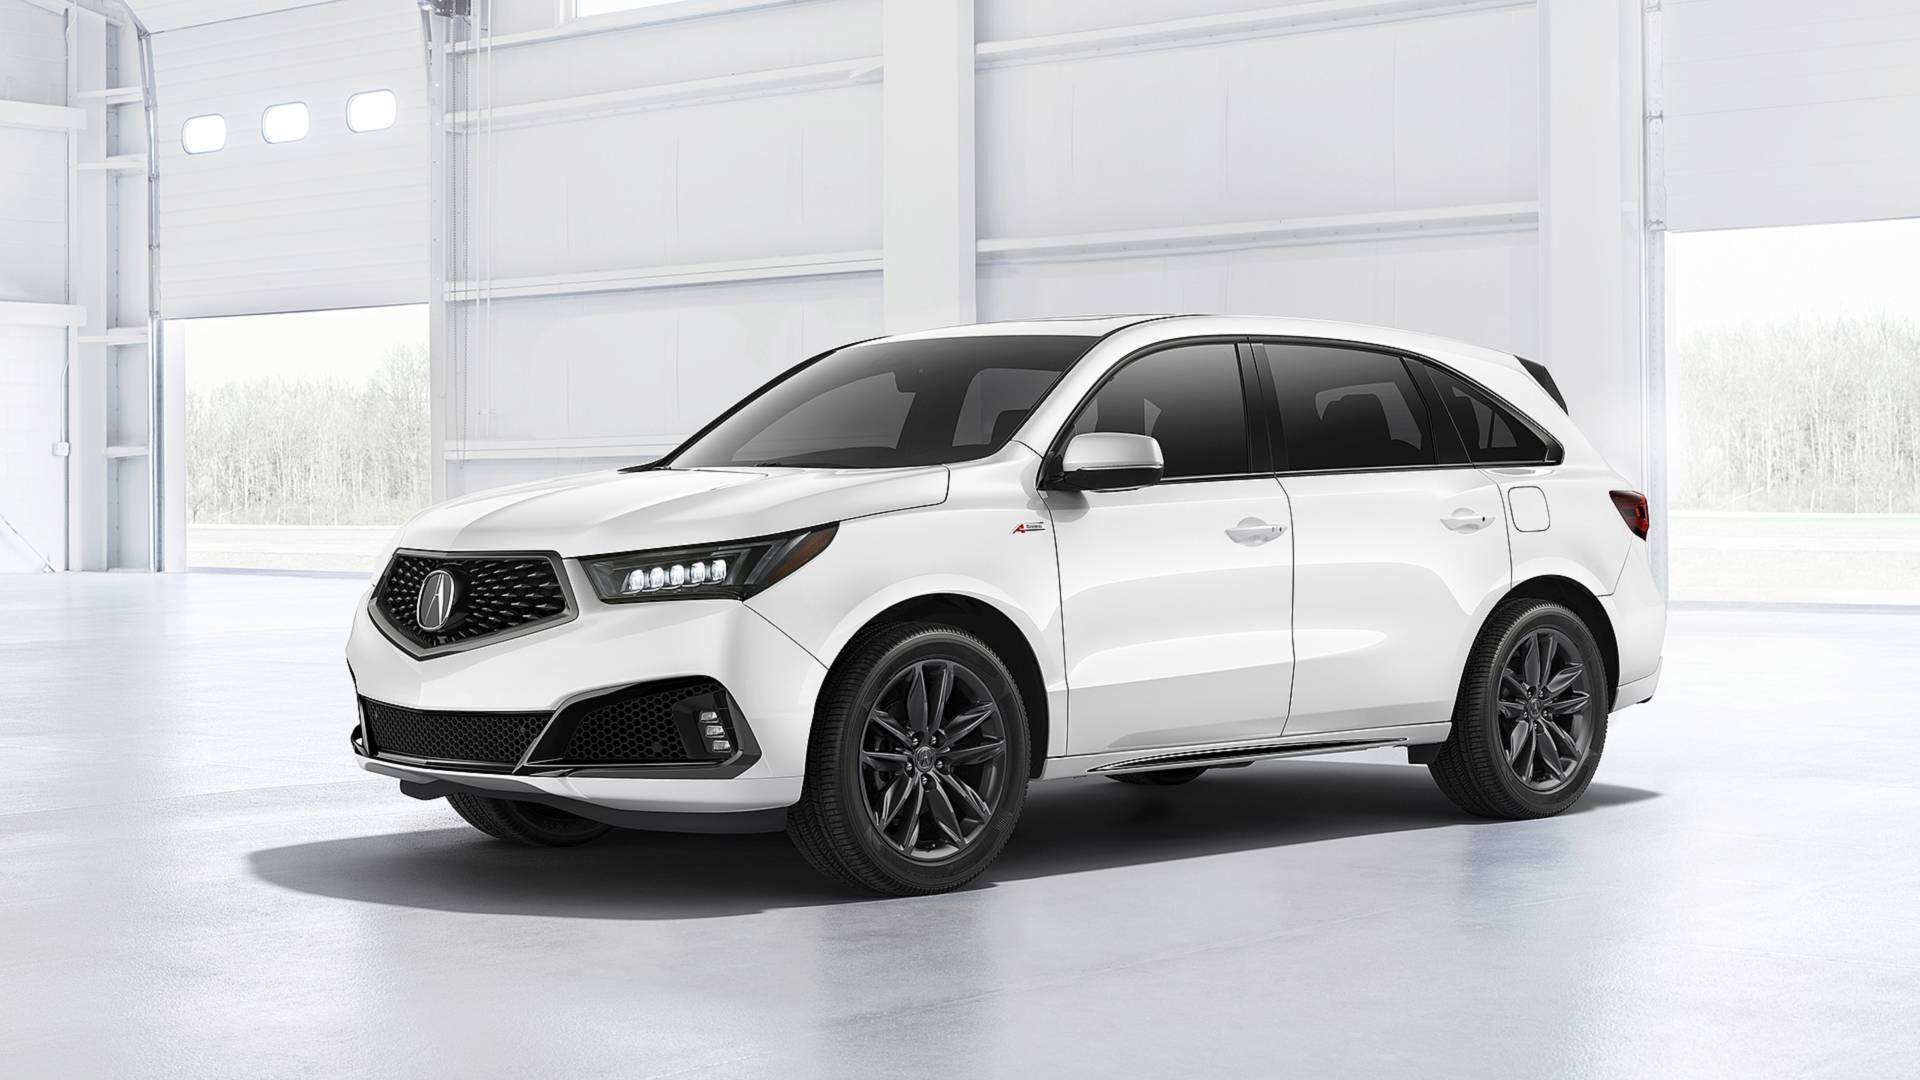 50 All New 2019 Acura Rdx Gunmetal Metallic Review And Specs Overview for 2019 Acura Rdx Gunmetal Metallic Review And Specs